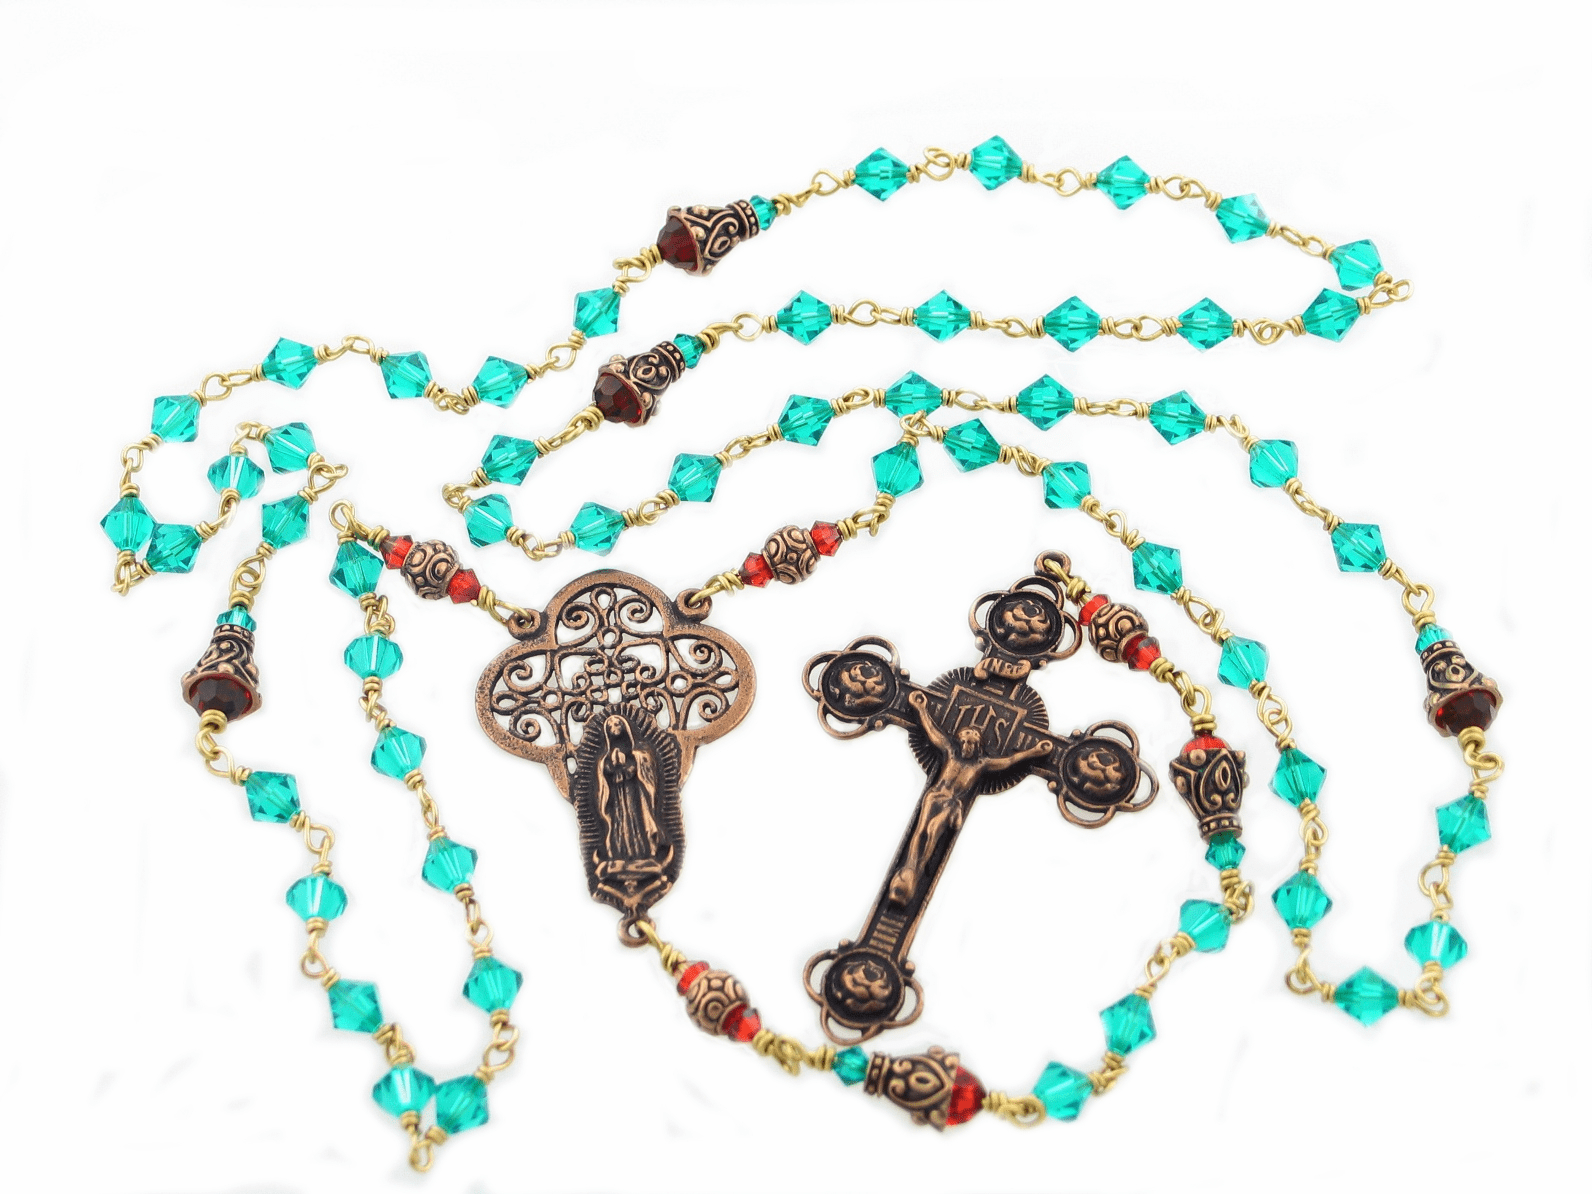 Heavenly Divine Our Lady of Guadalupe Wire-Wrapped Rosary